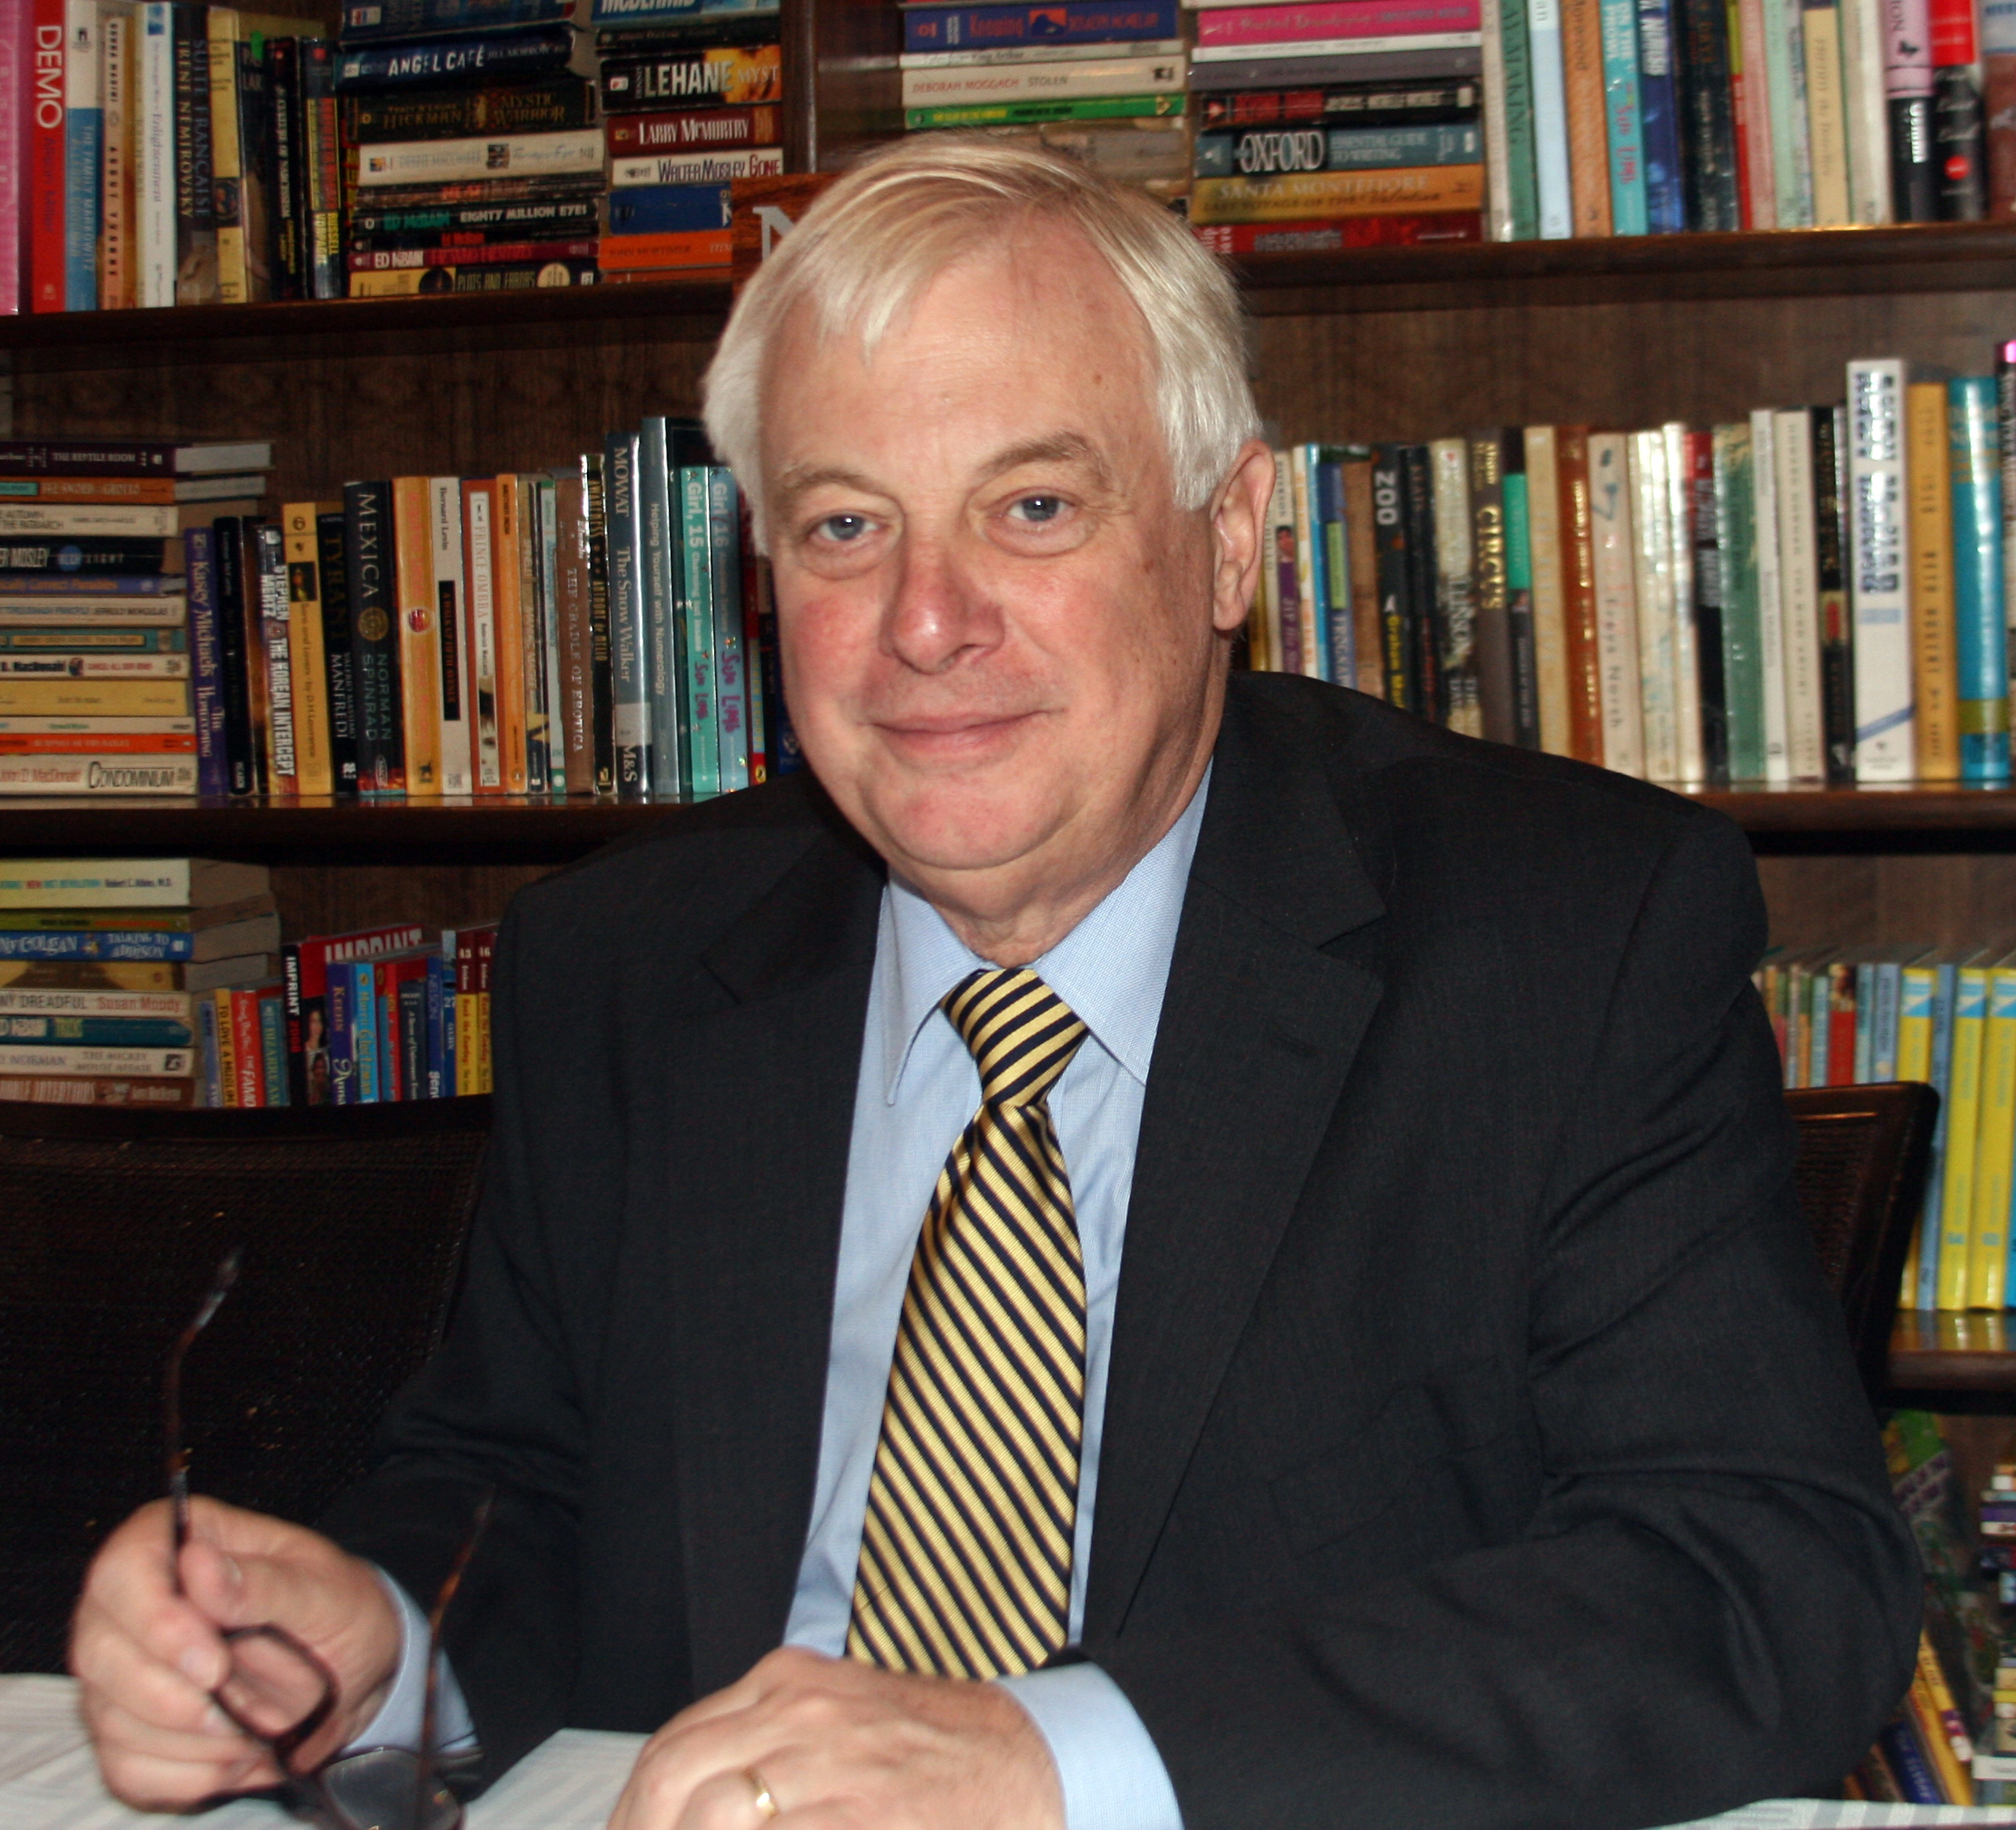 CHRIS PATTEN.jpg